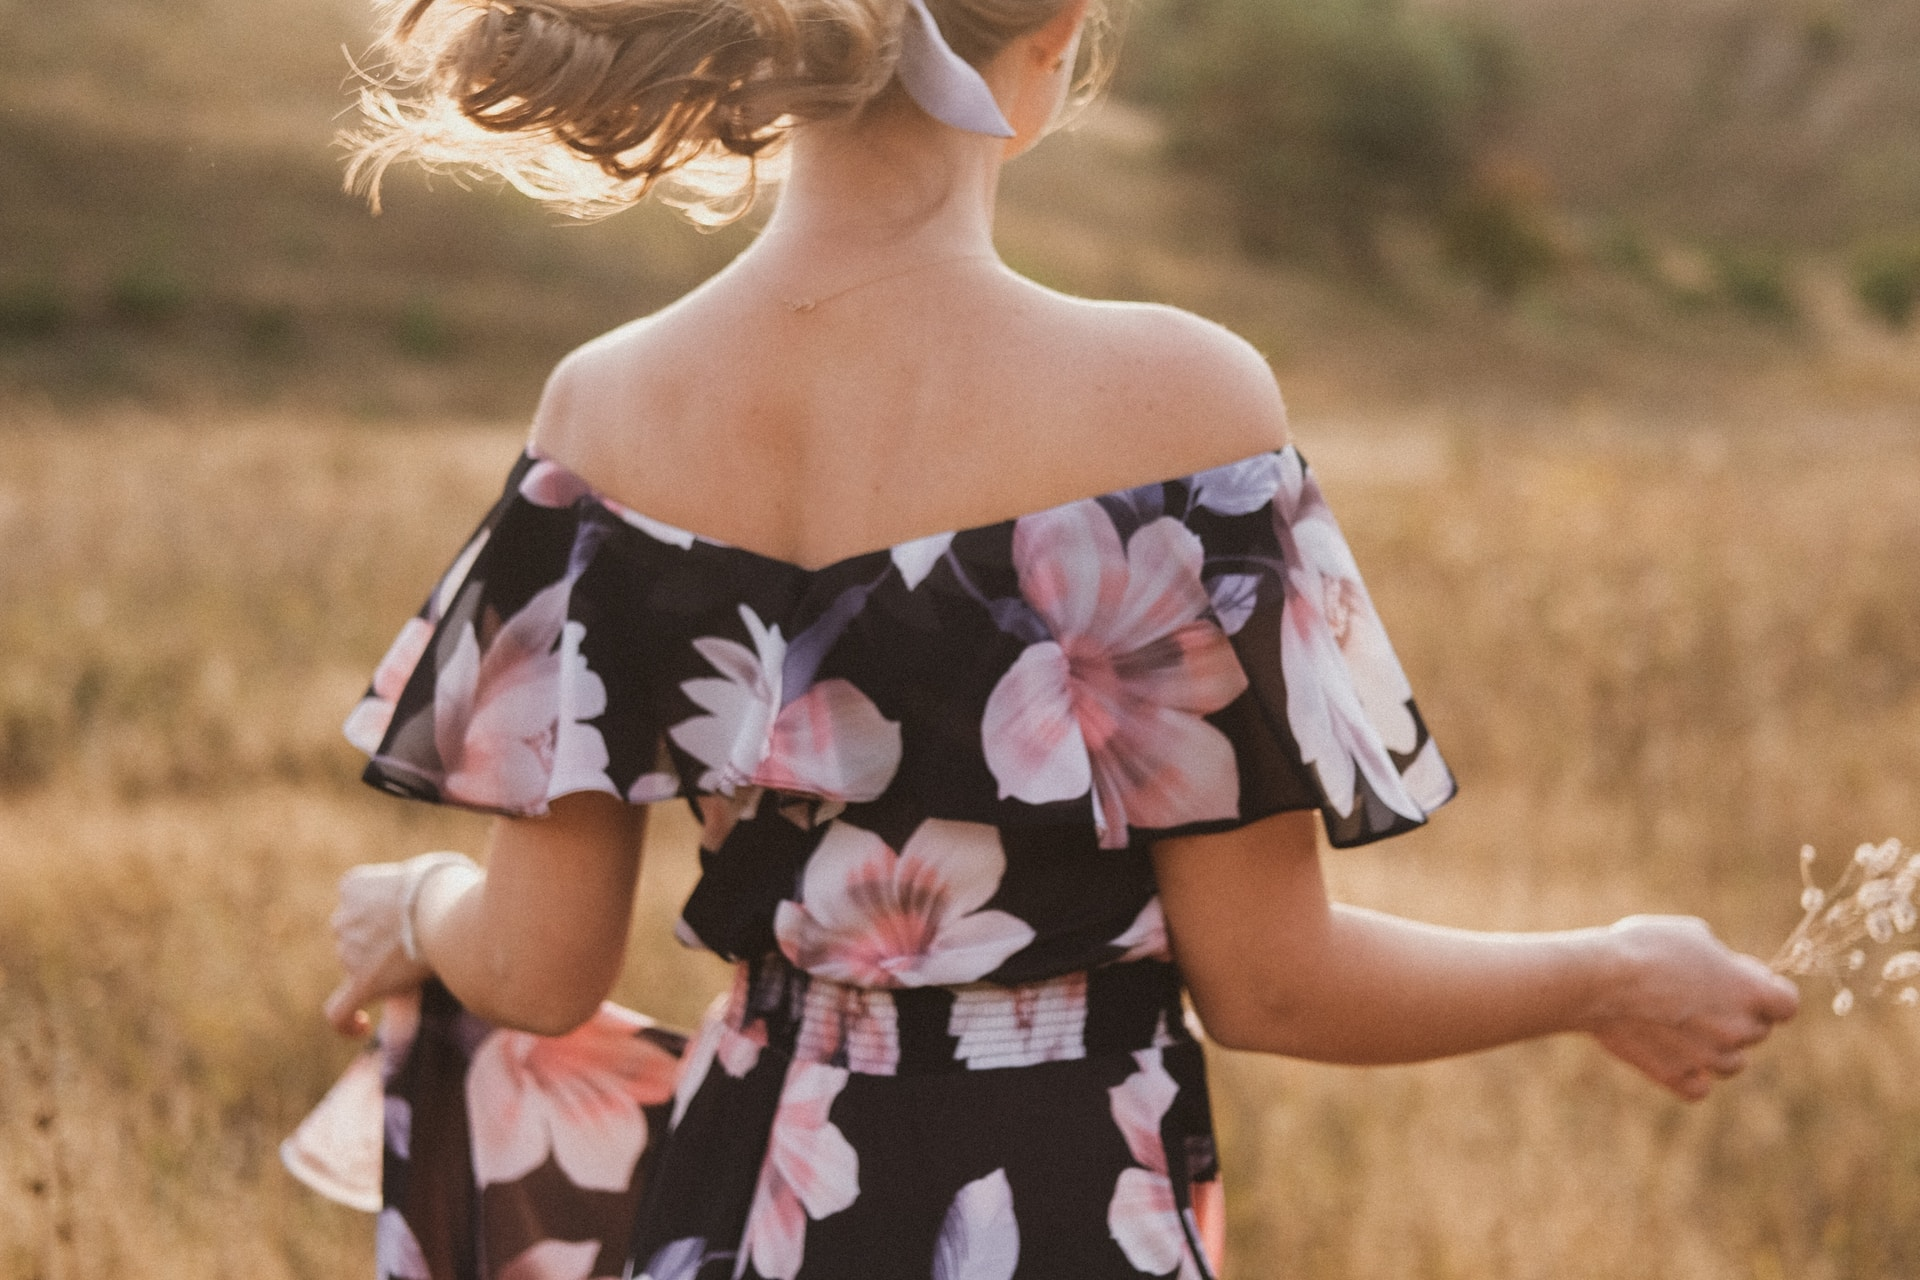 girl in black and pink floral dress standing on brown grass field during daytime